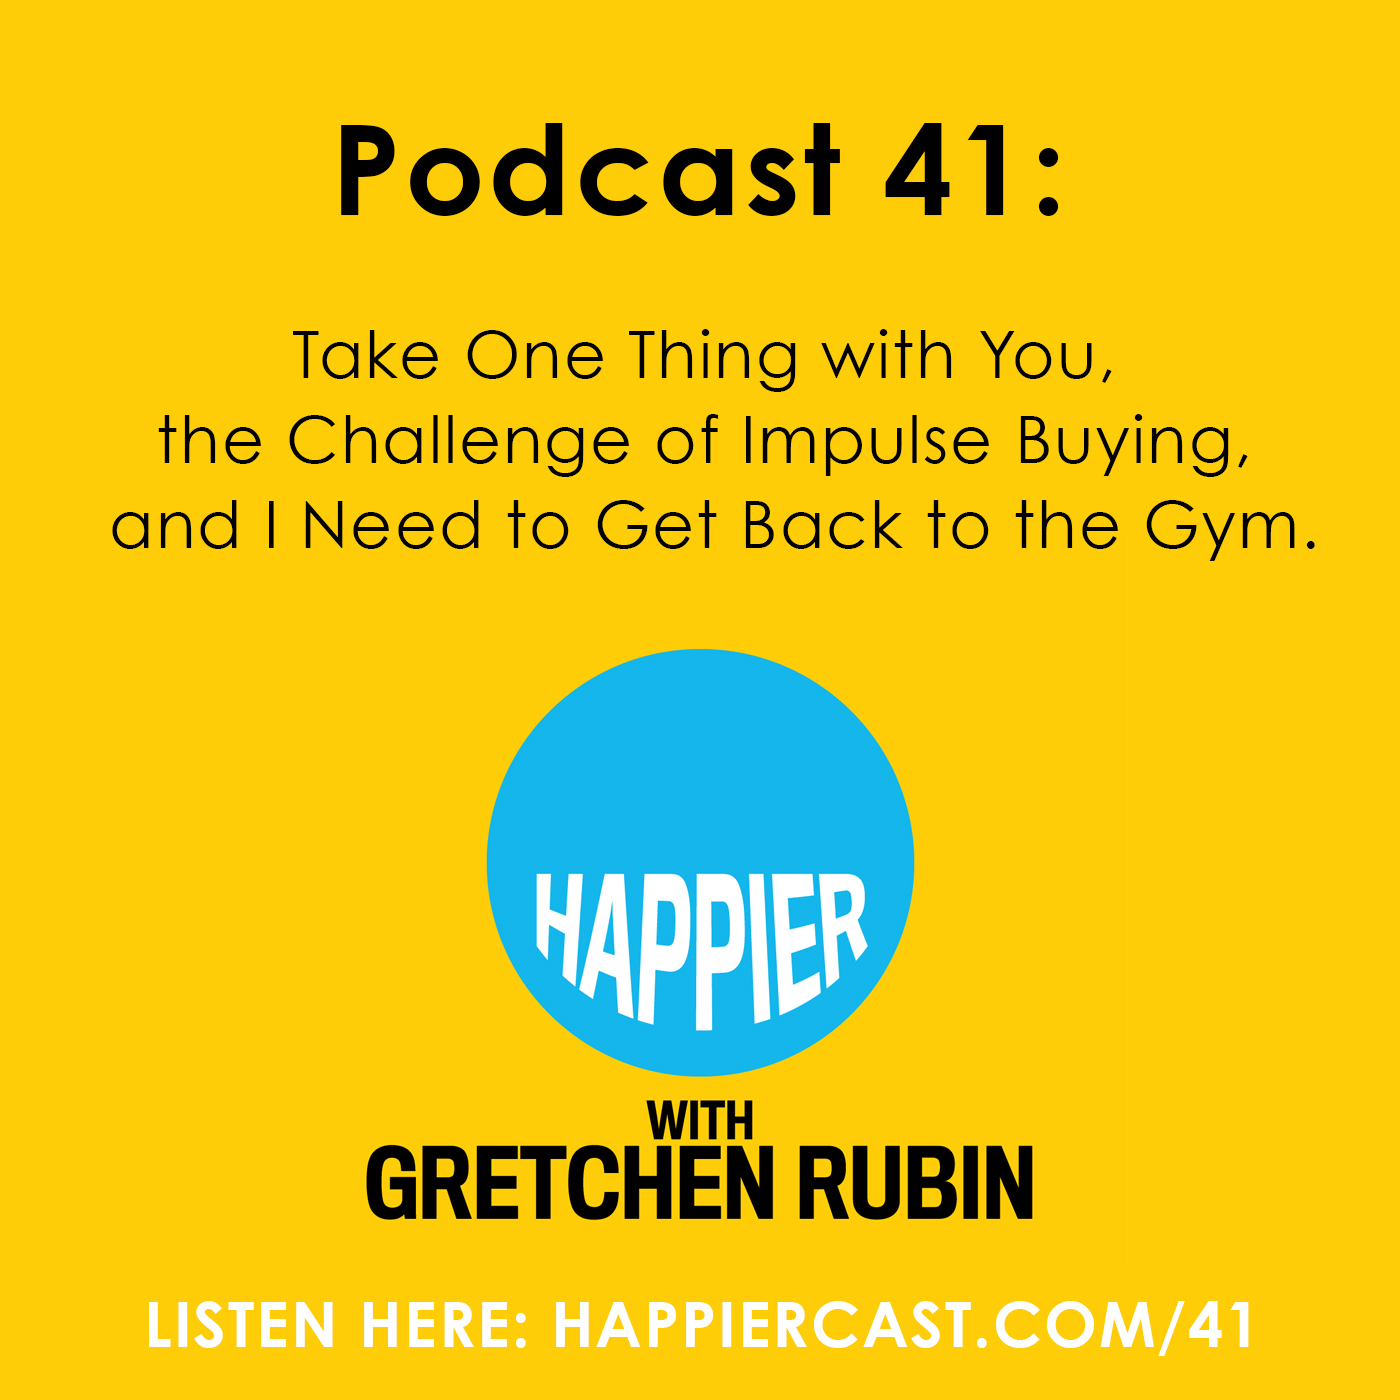 Happier with Gretchen Rubin #41 - Listen at Happiercast.com/41